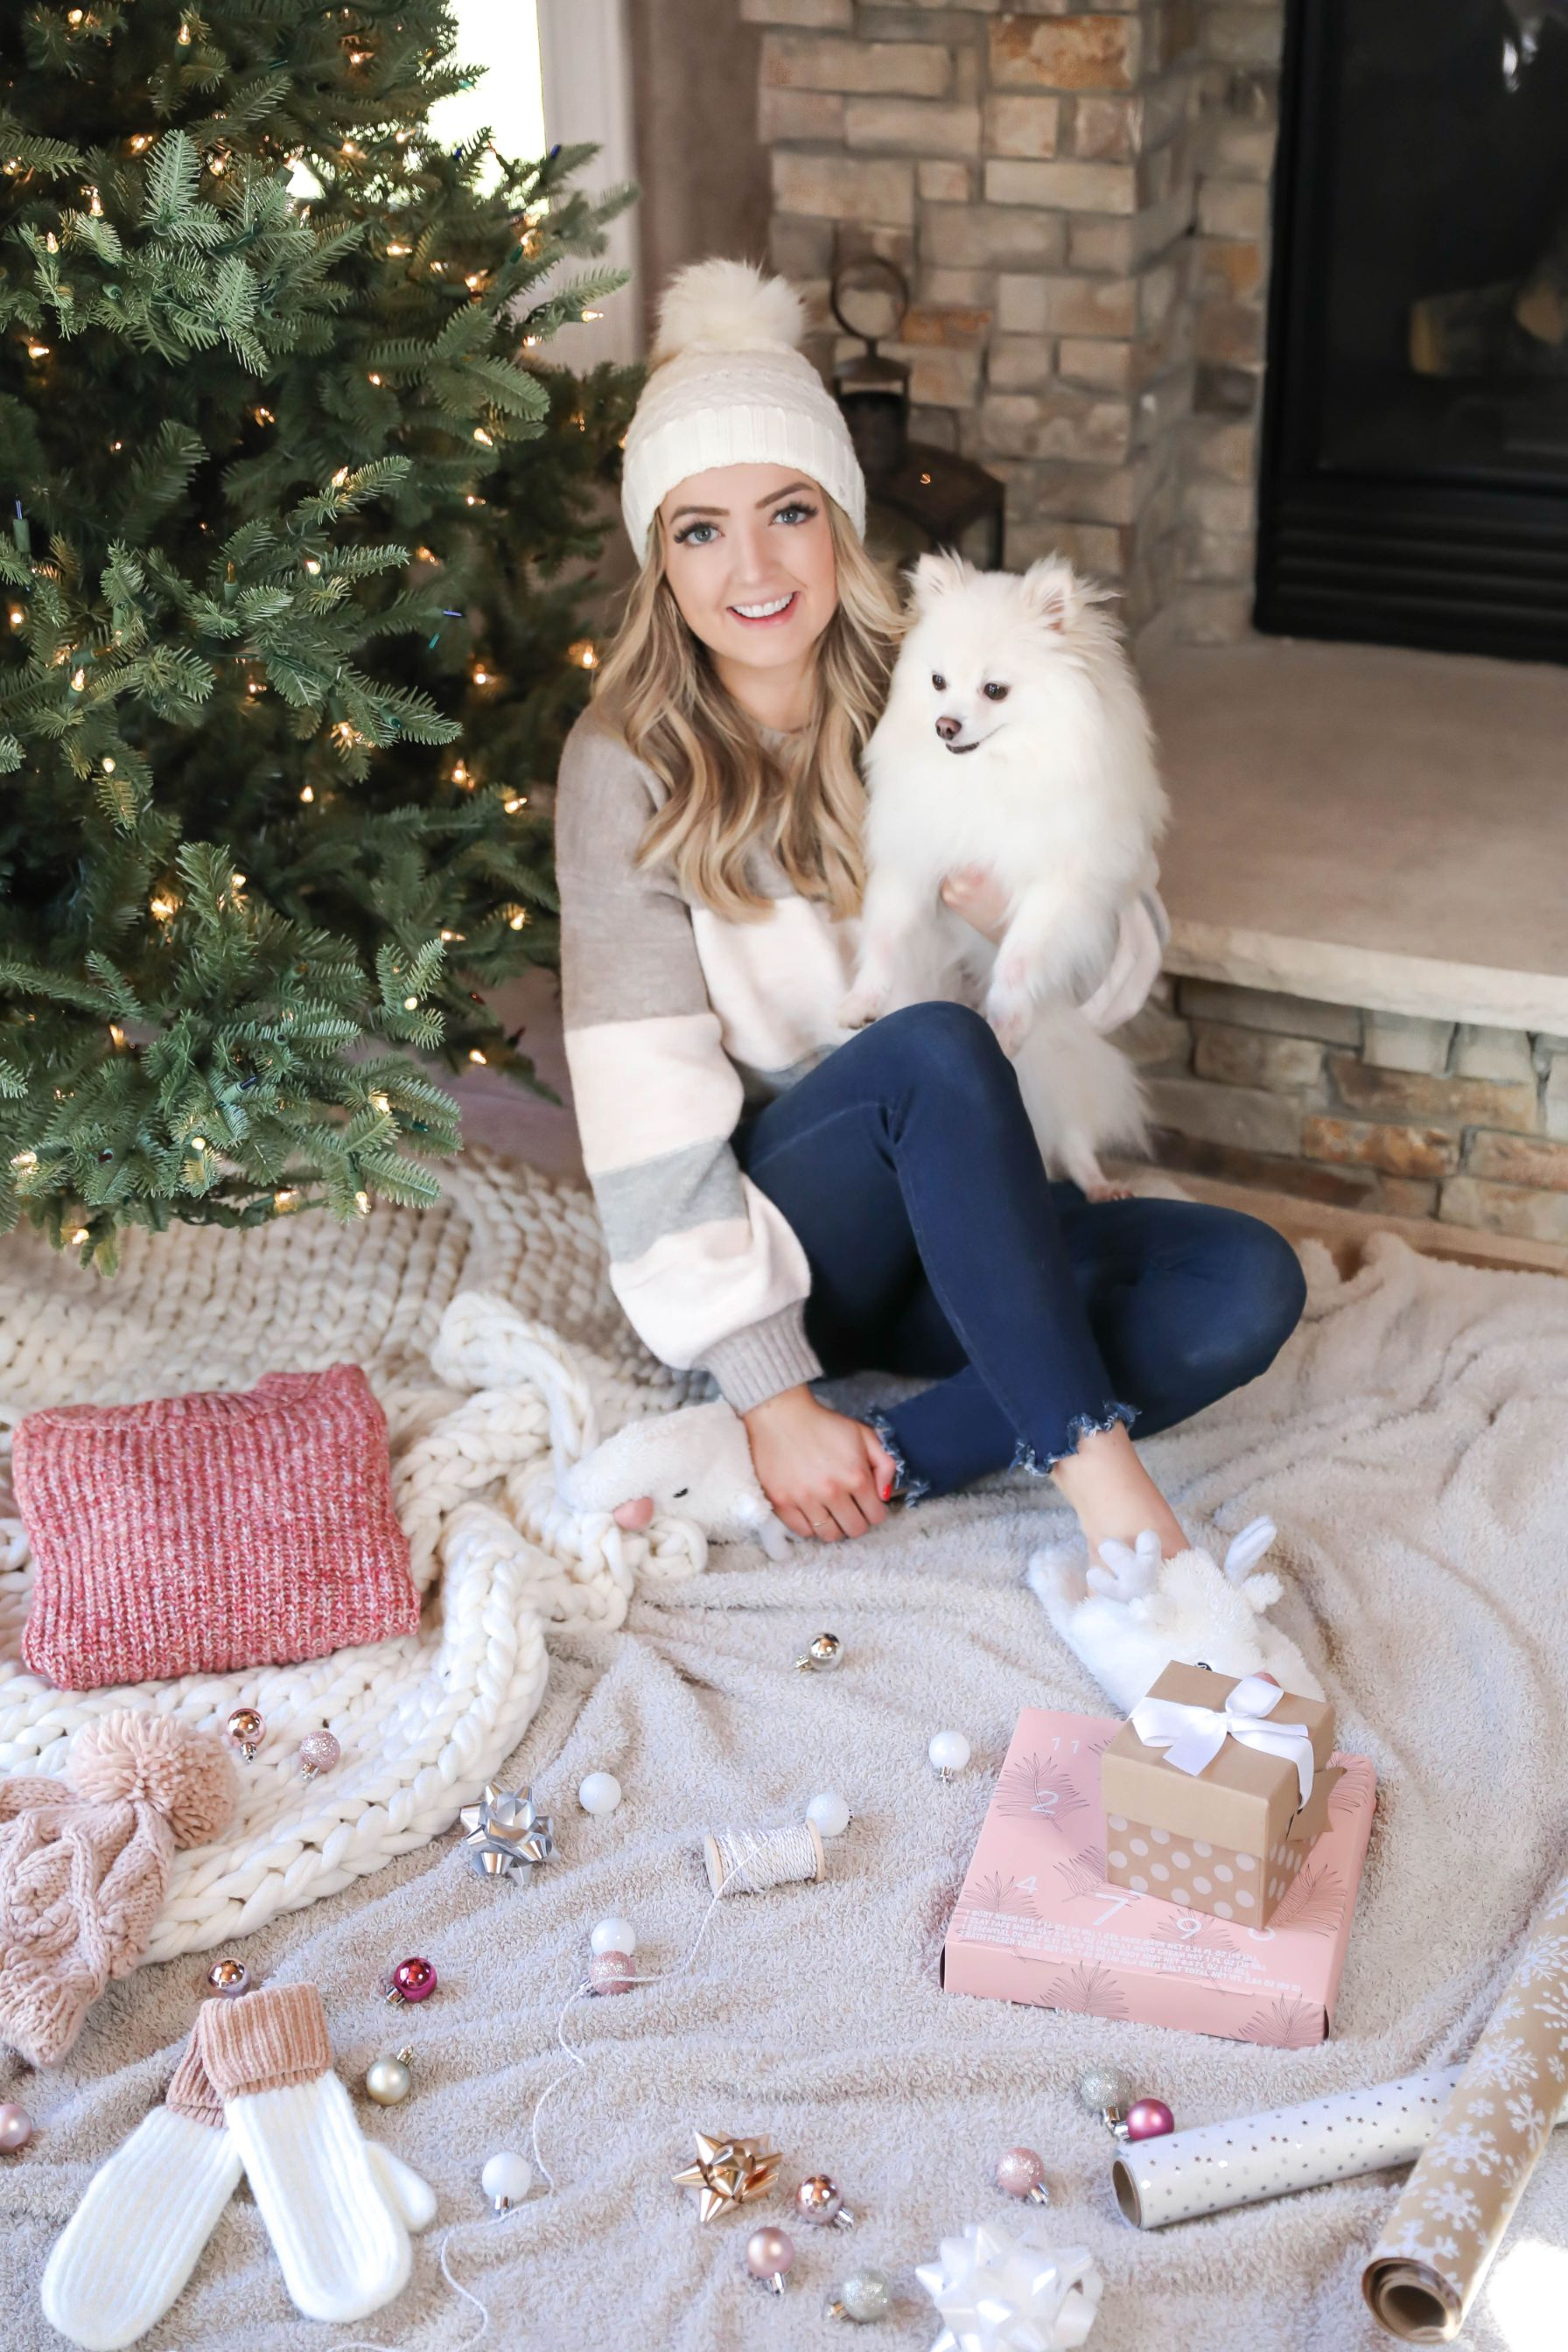 Christmas Gift Guides 2019 are here! I am giving you all the best present ideas for the holidays! Whether it's your mom, sister, best friend, dad, boyfriend, or more! Get ready for lots of great posts! Daily Dose of Charm by Lauren Lindmark